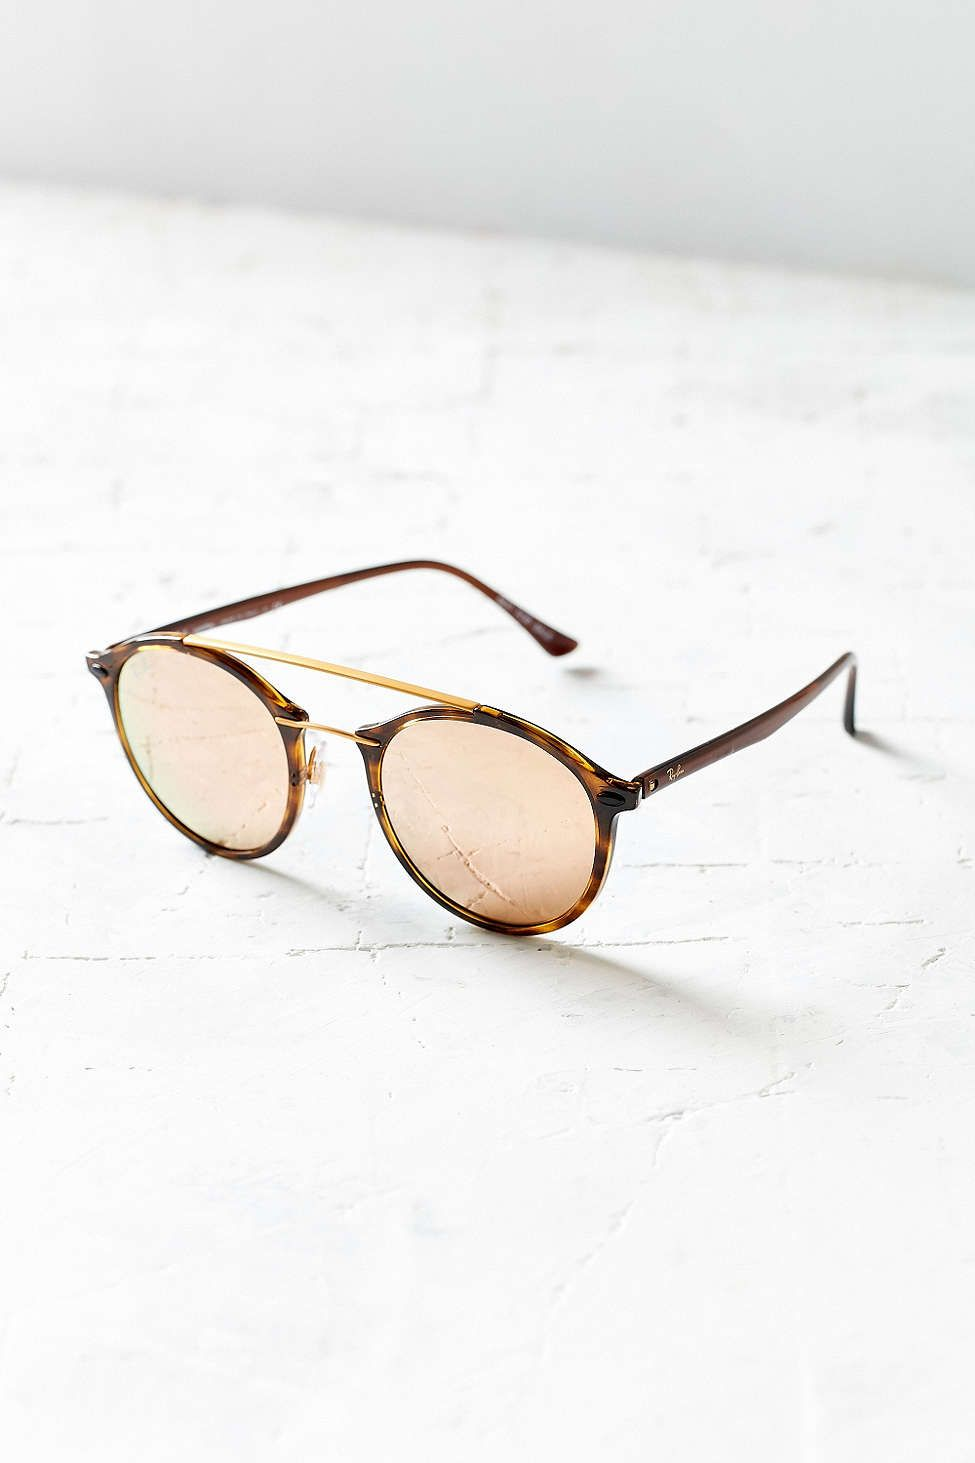 dcaf2b99eed0c Ray-Ban Tech Light Round Aviator Sunglasses